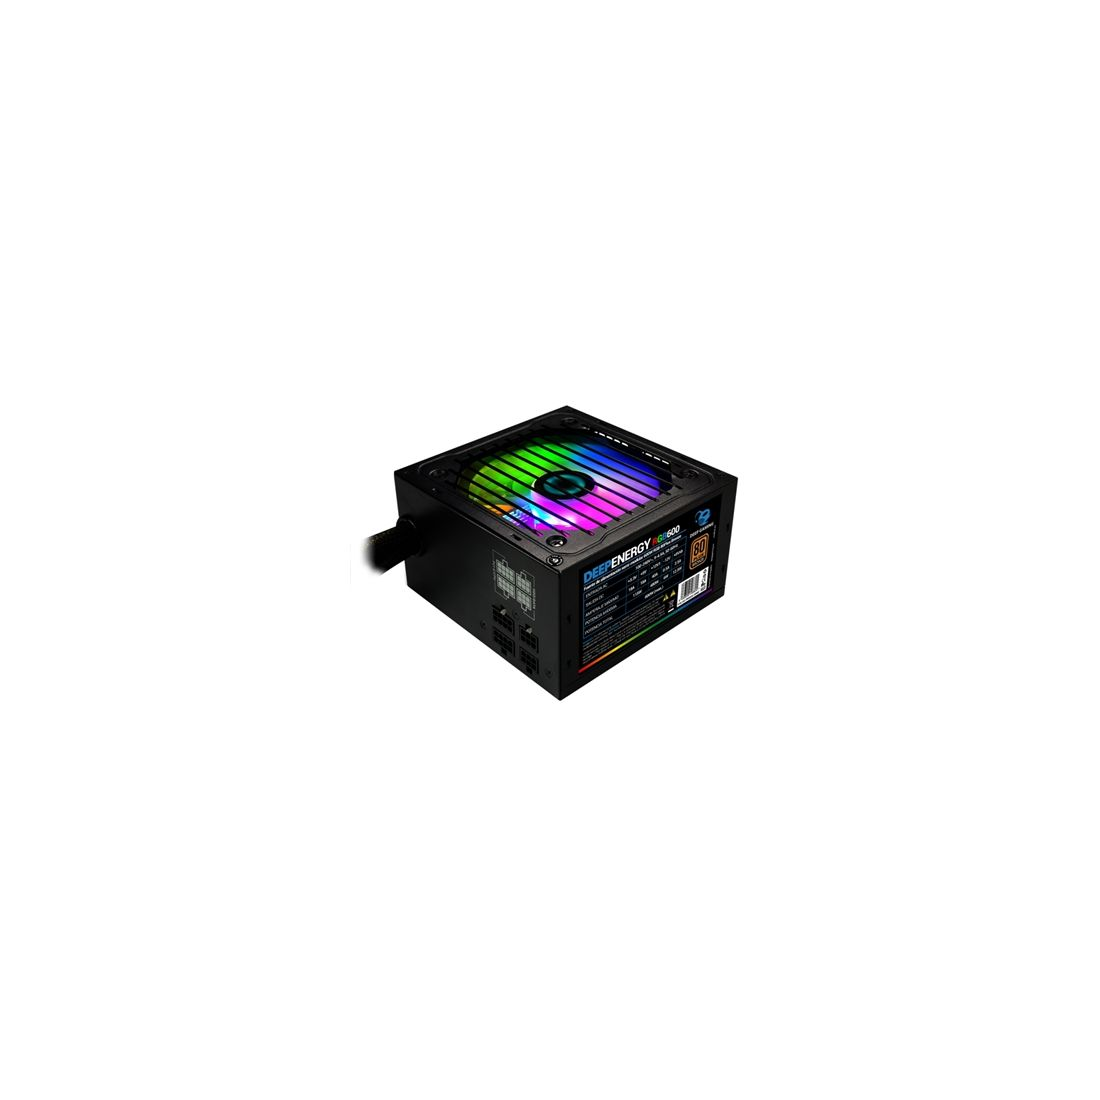 COOLBOX FTE ALIM ATX DEEPGAMING DEEPENERGY 600 R